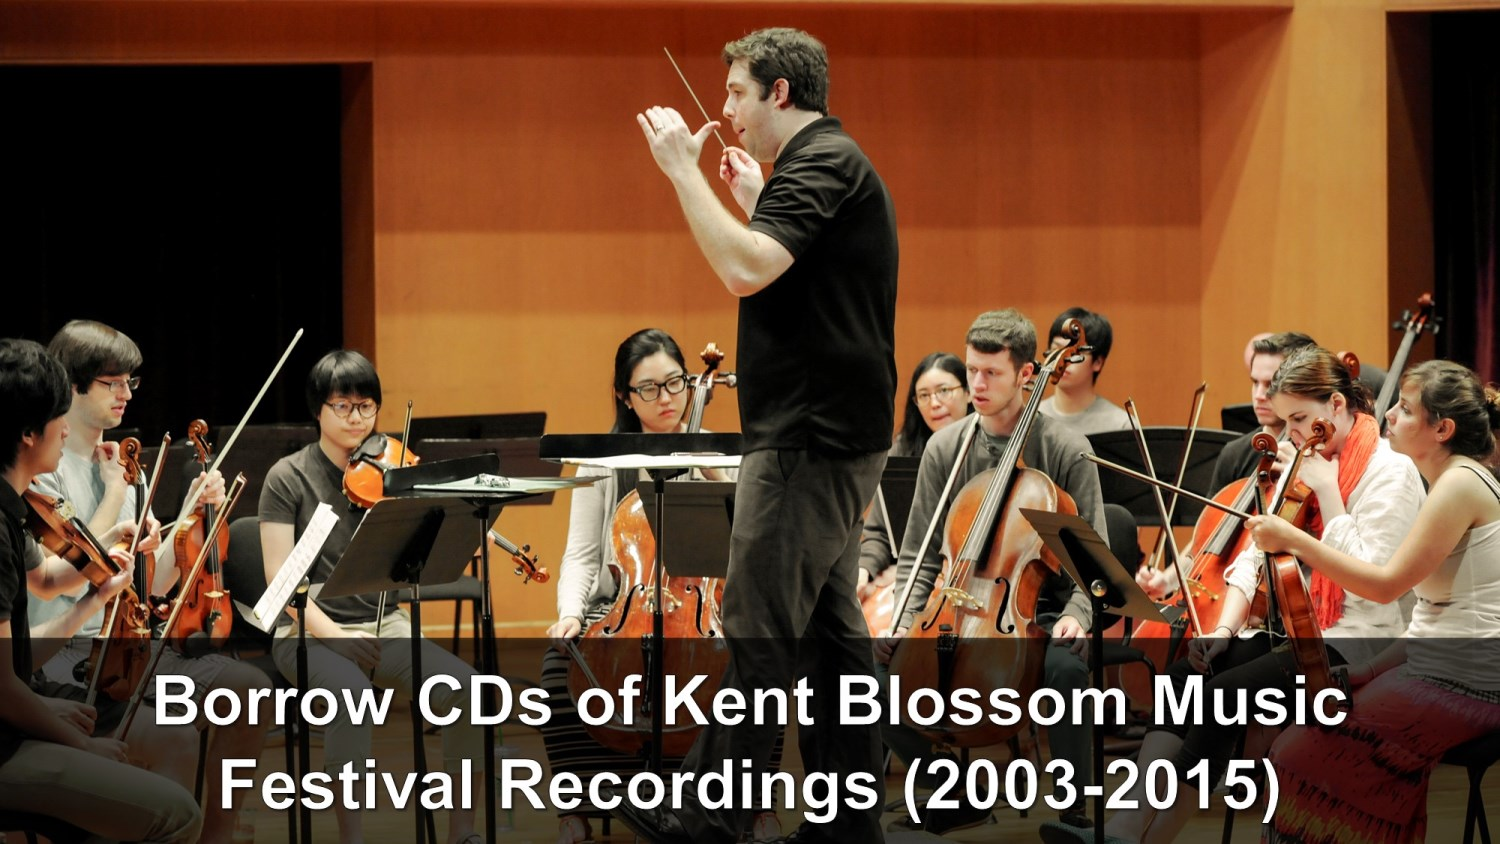 Show more about Kent/Blossom Music Festival faculty and chamber recital recordings